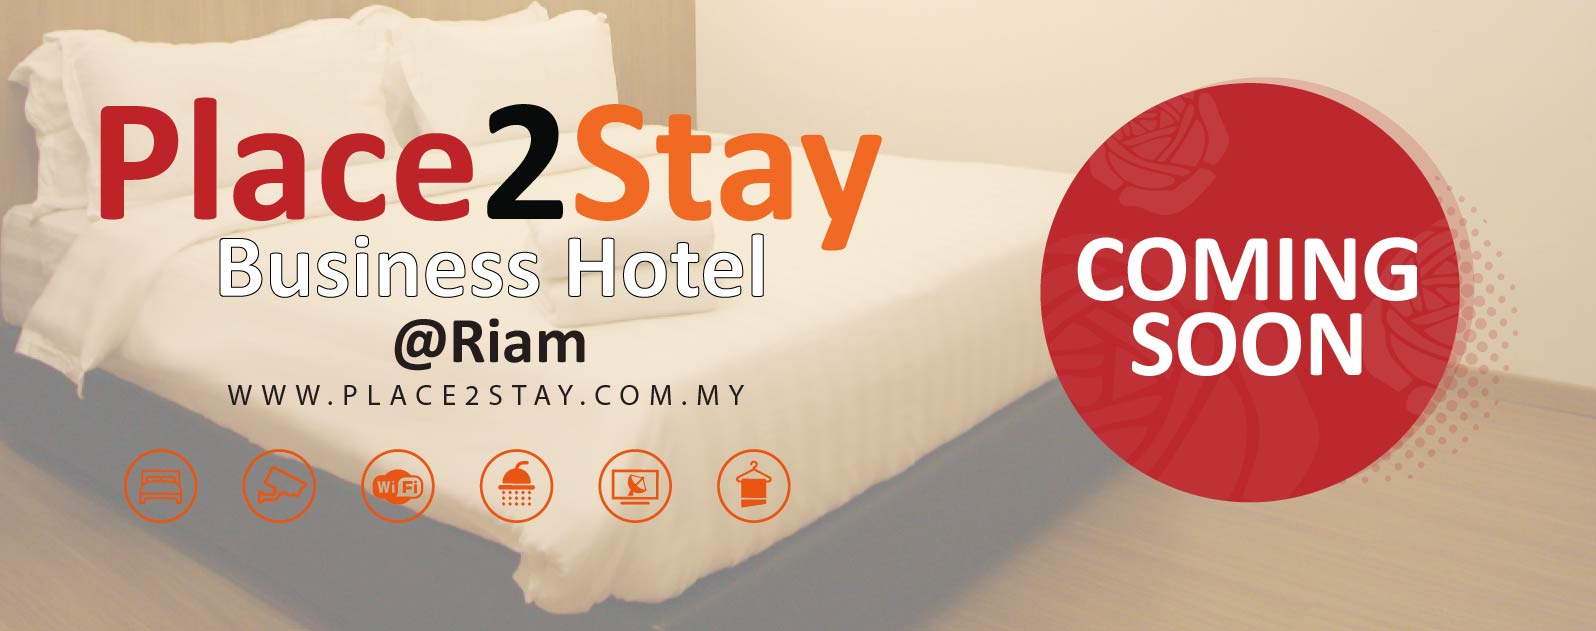 Place2Stay Business Hotel @Riam